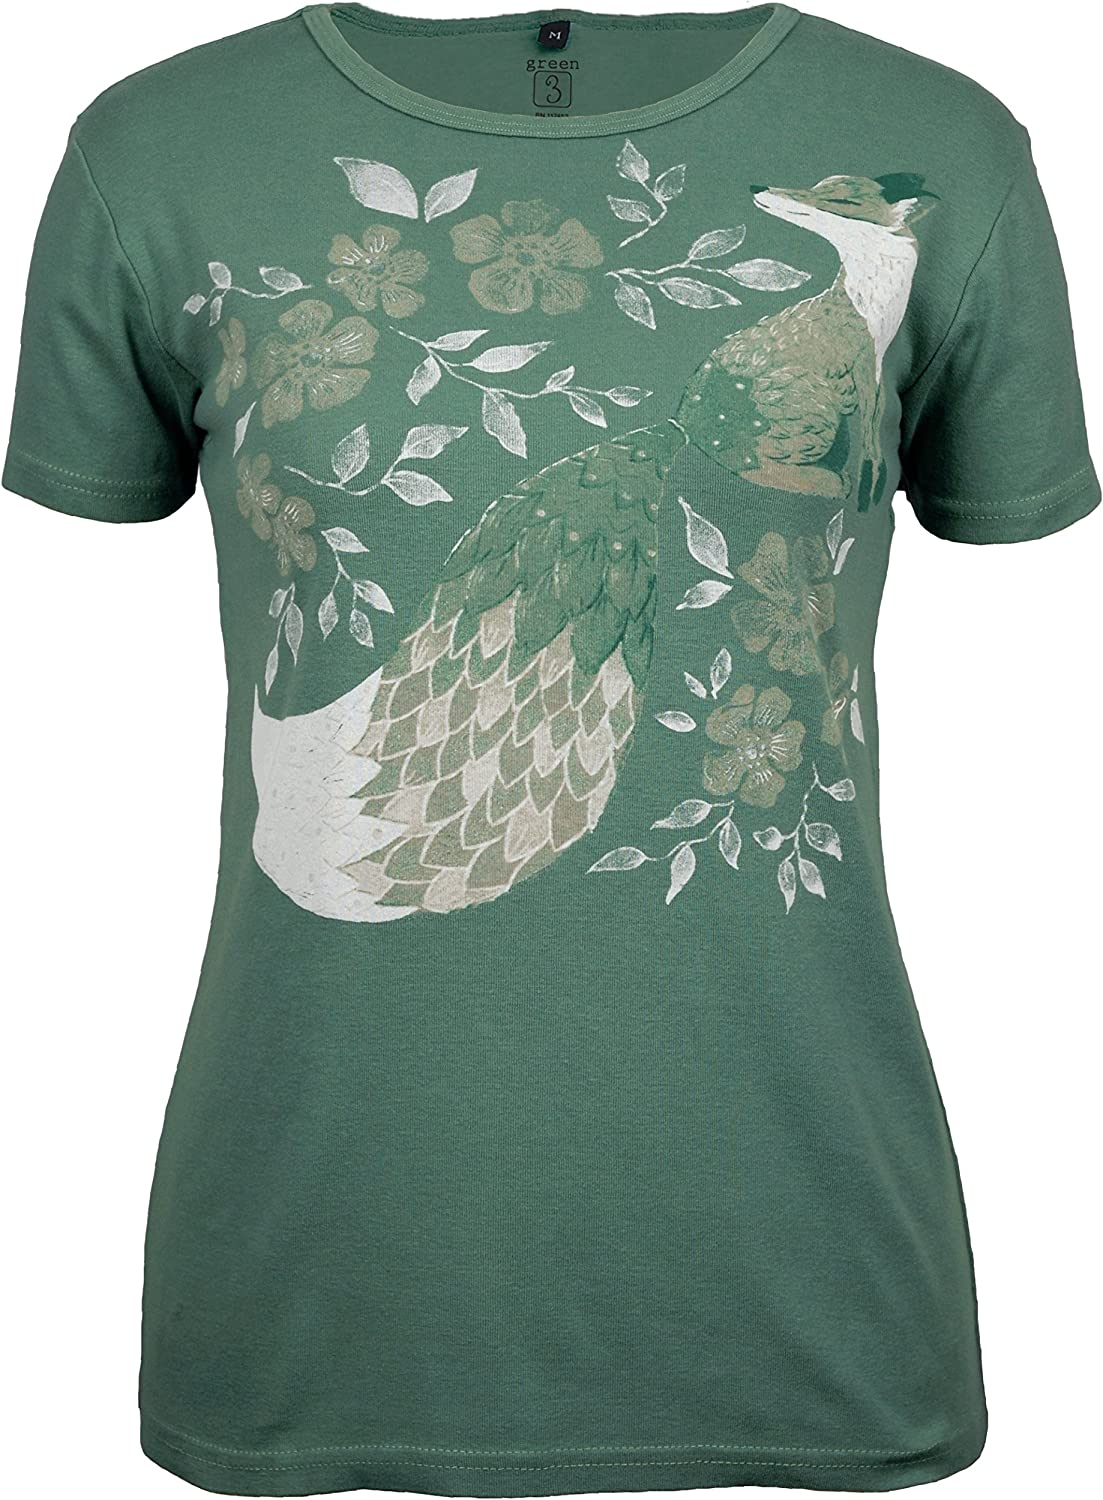 41cad262dc5 Green 3 Short Sleeve T Shirt 100% Organic Cotton Womens Tshirt, Made in The